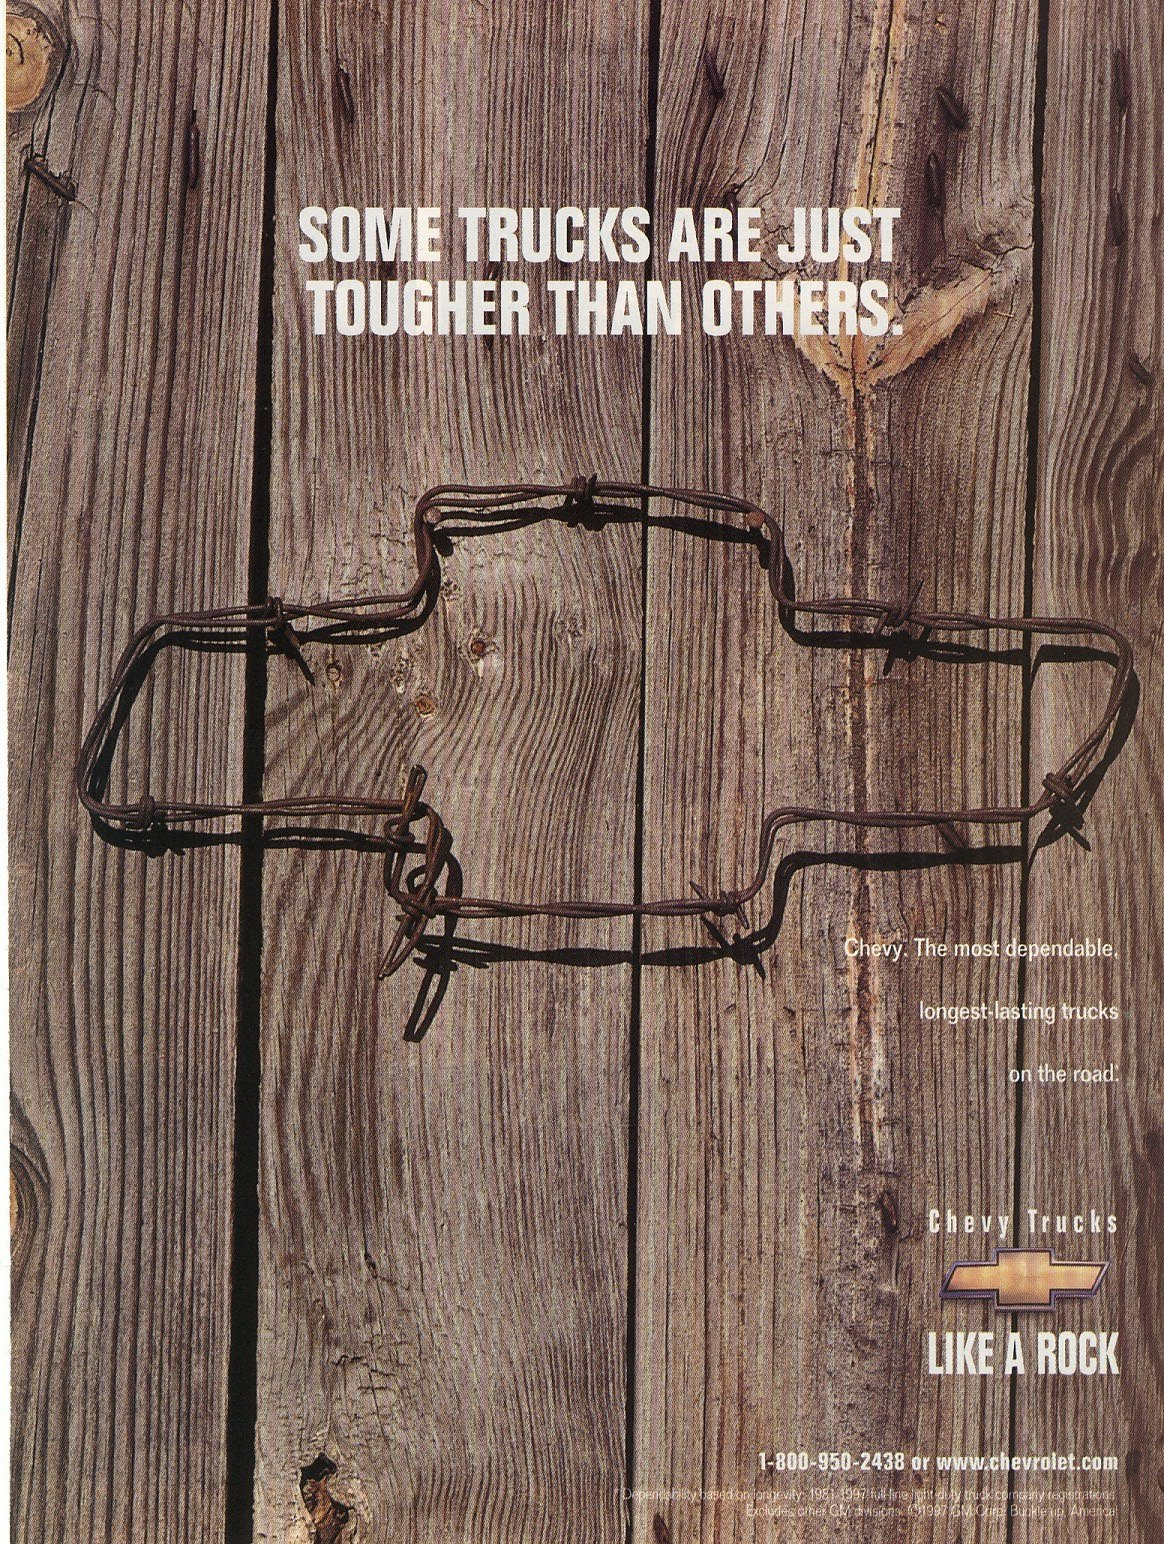 1. Samantha Flynn   2. Chevy Trucks   3. 1998   4. I am a truck lover, old and new. I like the use of unusual materials that make the ad unique.   5. This image represents graphic design through the use of thespace and text to pull attention to the Chevy Truck brand.